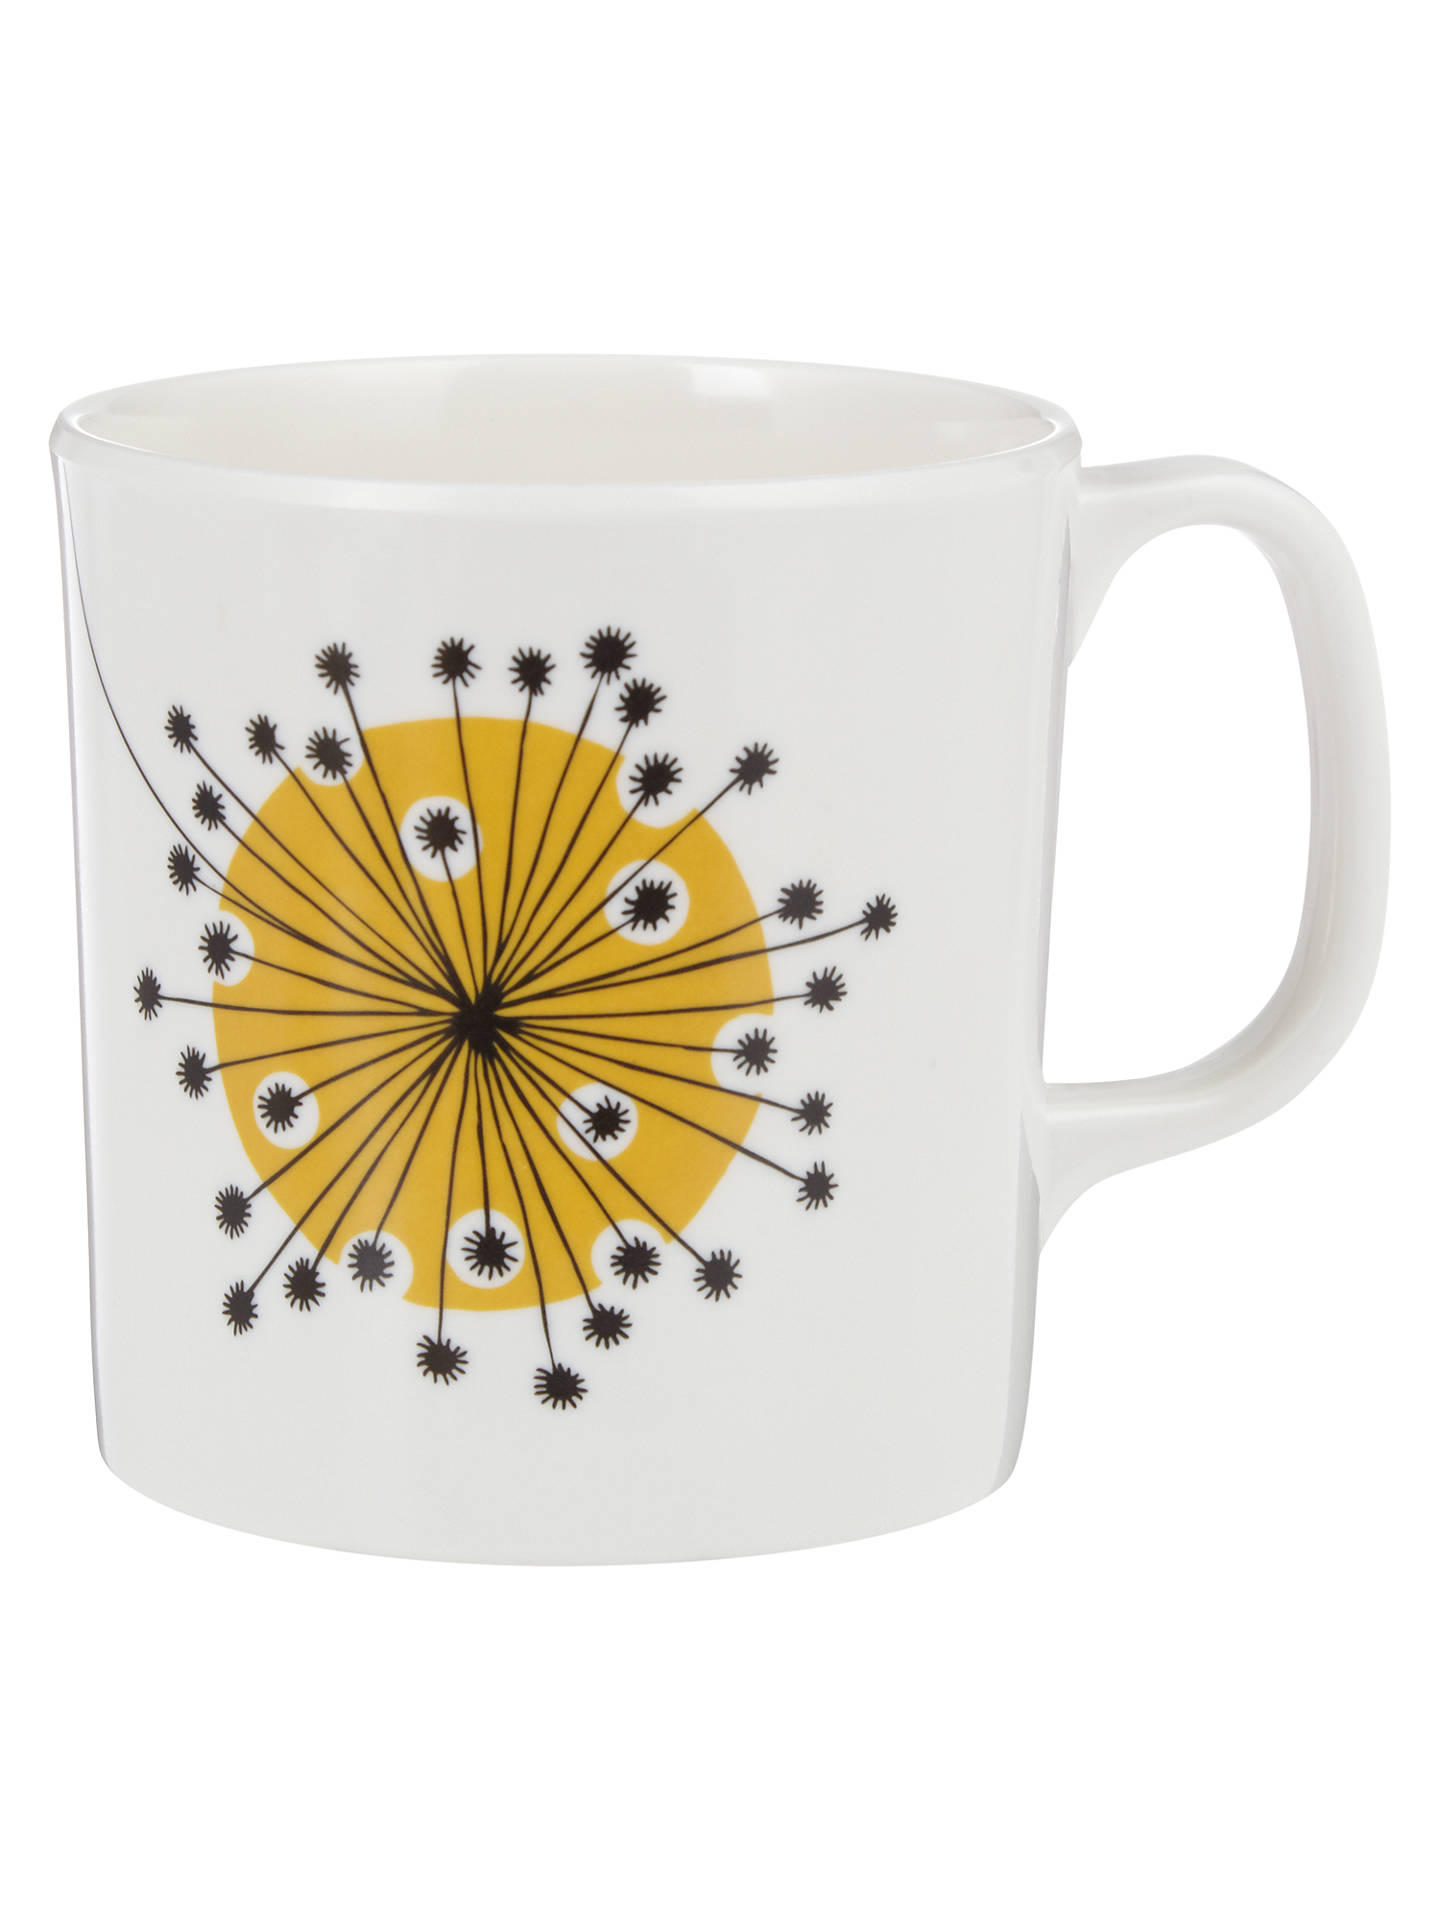 Buy MissPrint Mug, Dandelion Online at johnlewis.com